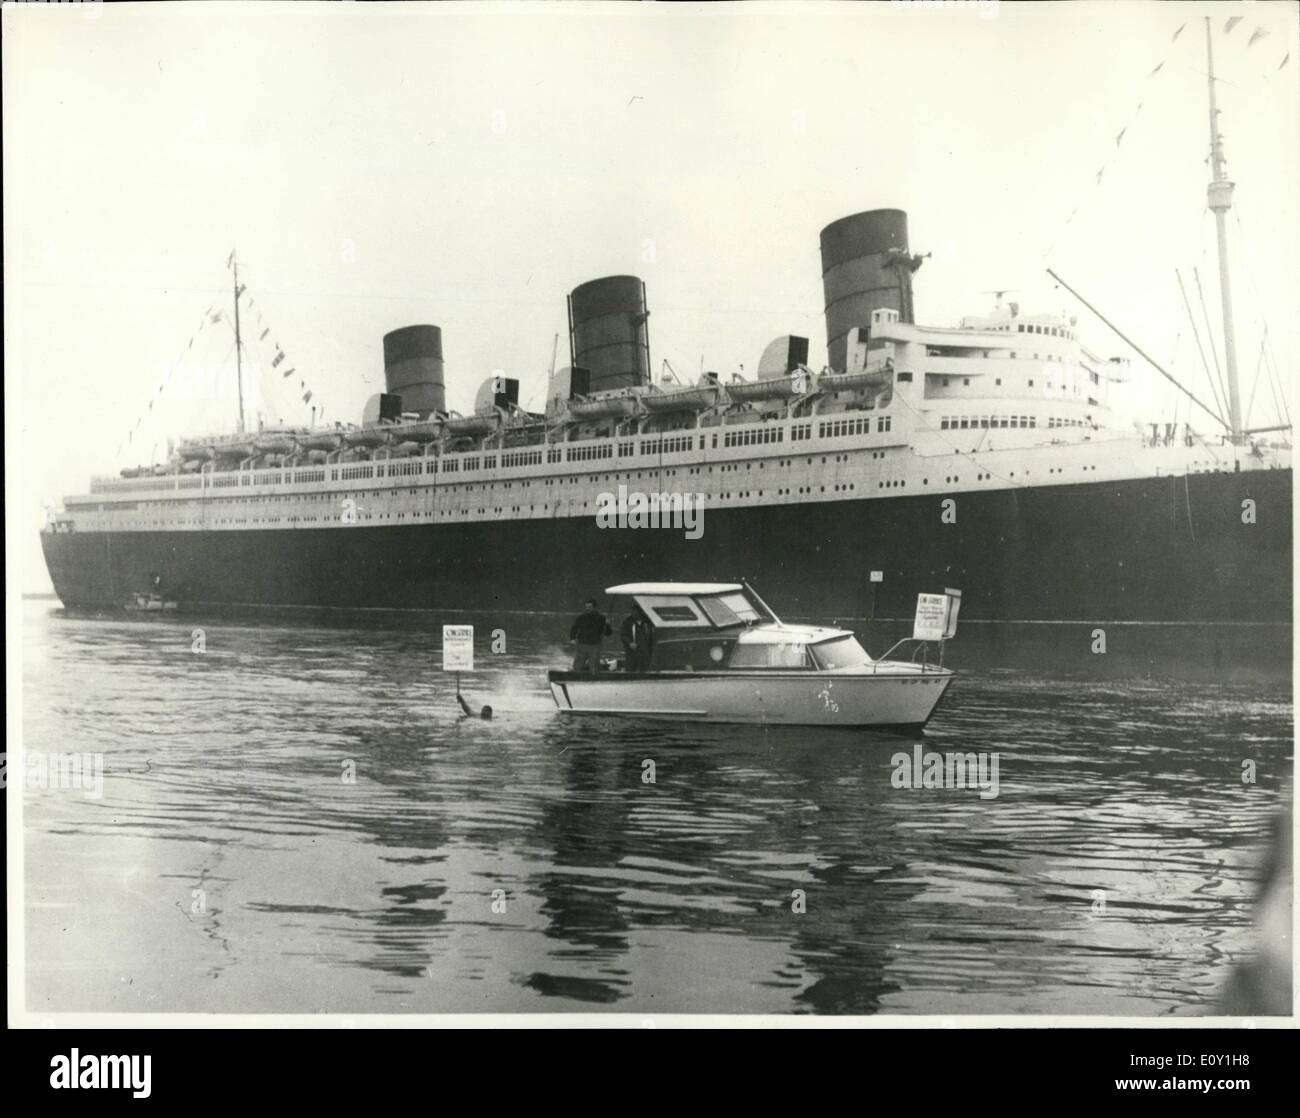 3 März 1968 Gebunden Queen Mary Streik In Long Beach Keines Der